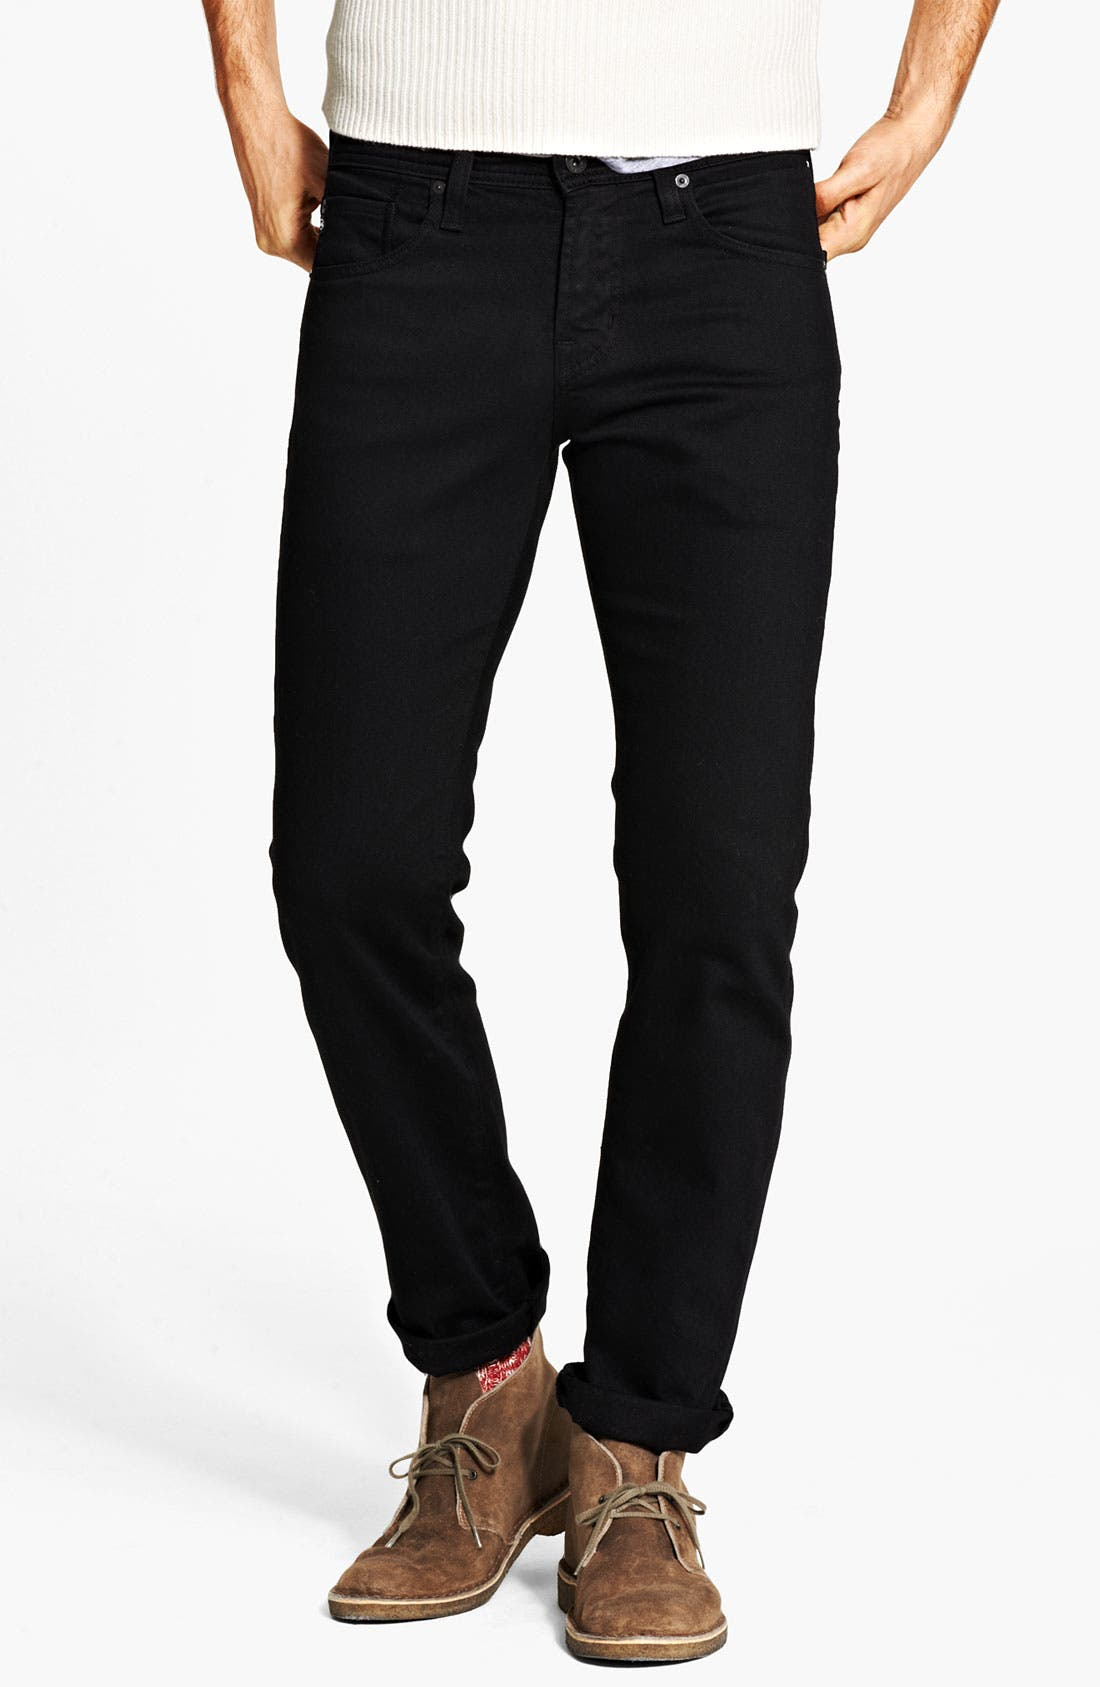 Alternate Image 1 Selected - AG 'Matchbox' Slim Fit Jeans (Coated Black)